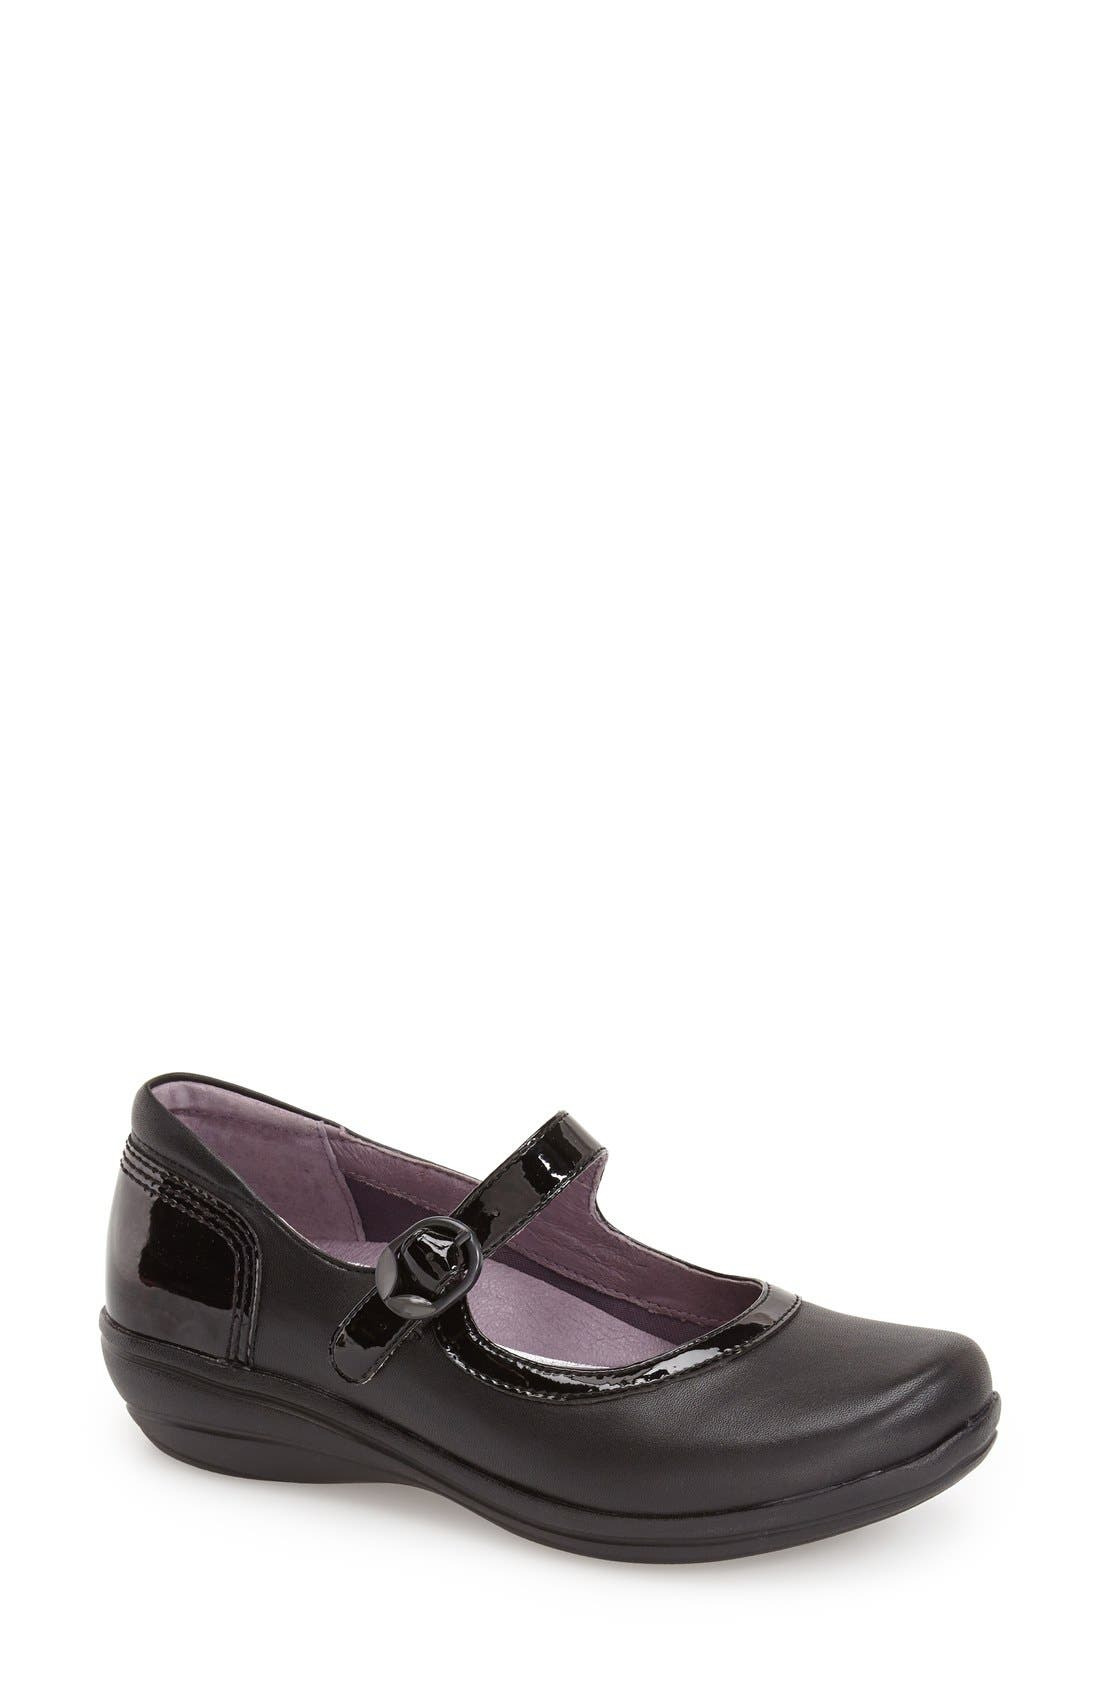 DANSKO 'Misty' Mary Jane Wedge, Main, color, 001